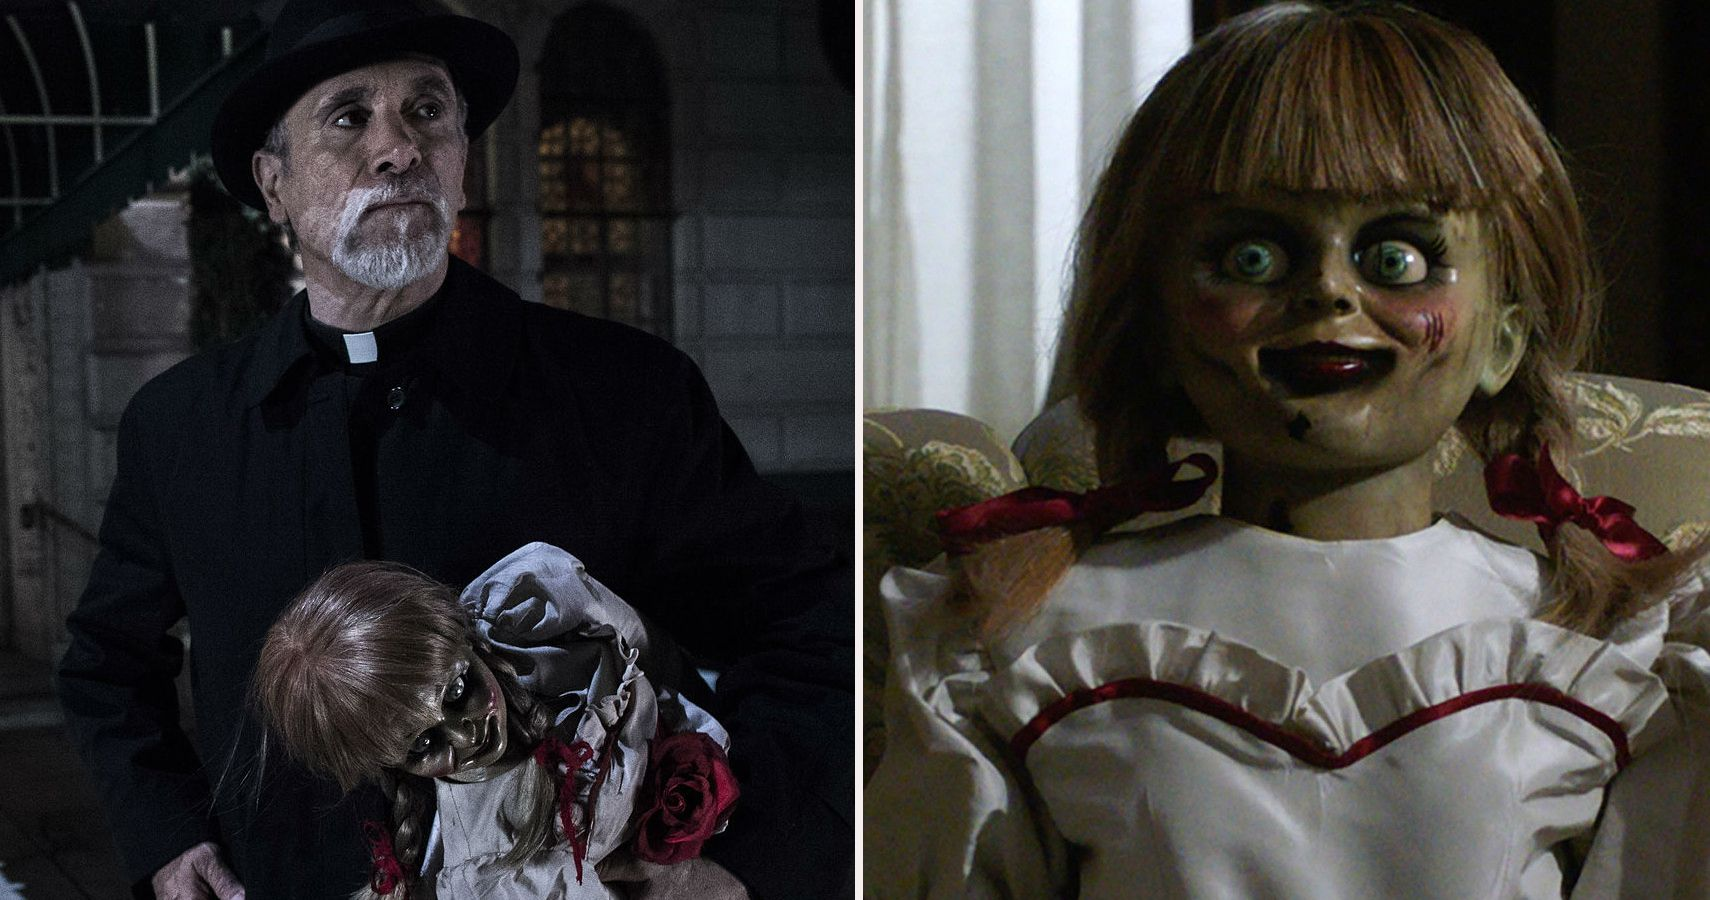 10 Things About The Annabelle Doll That Make No Sense